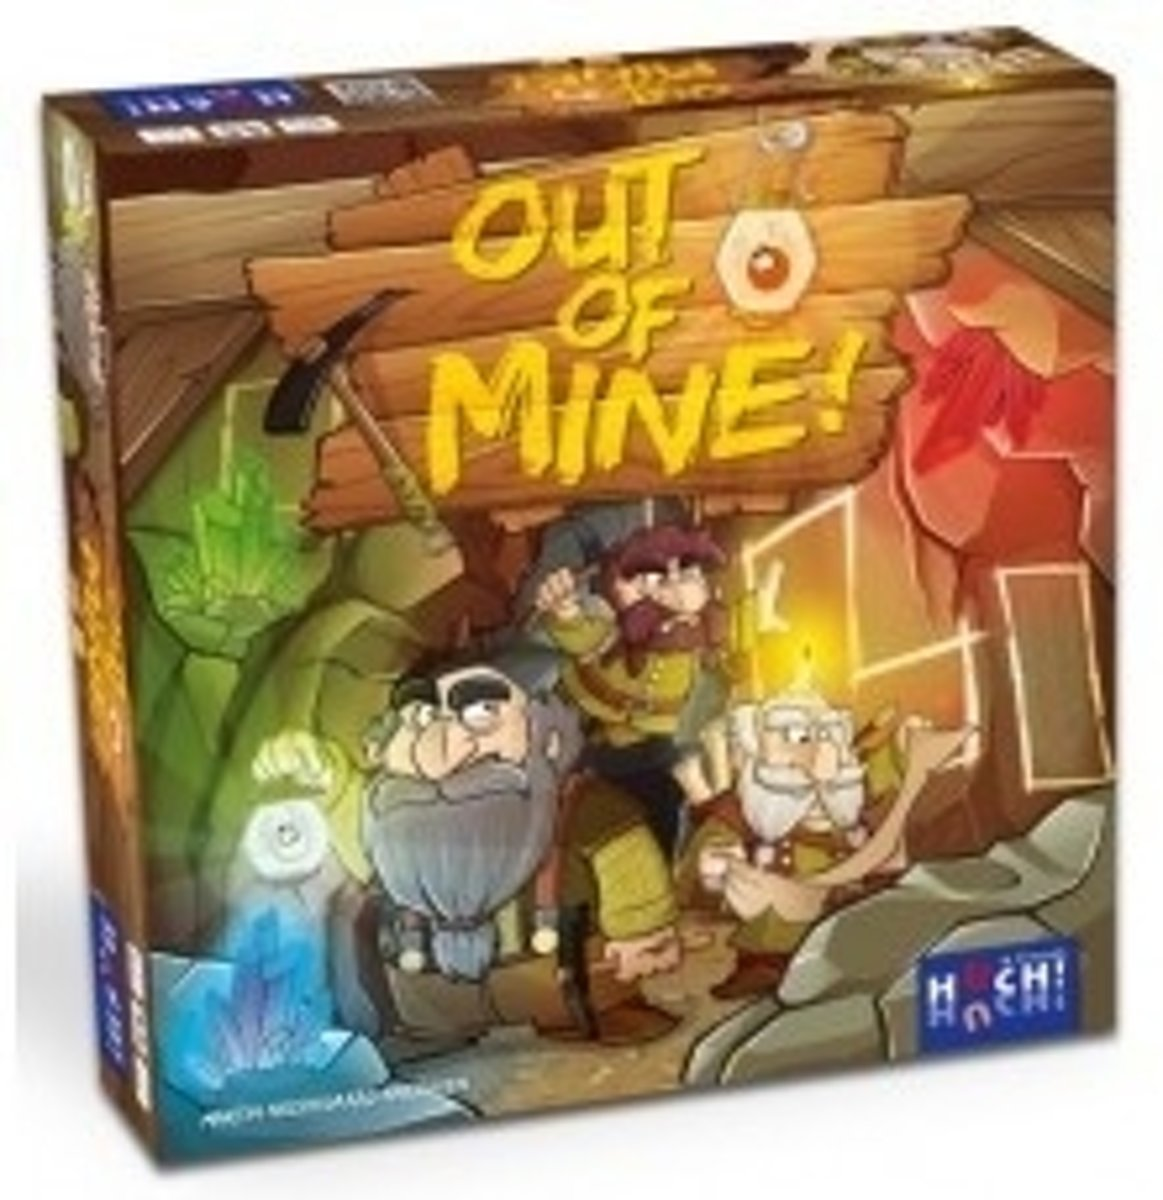 Out of Mine - Huch ENG / NL